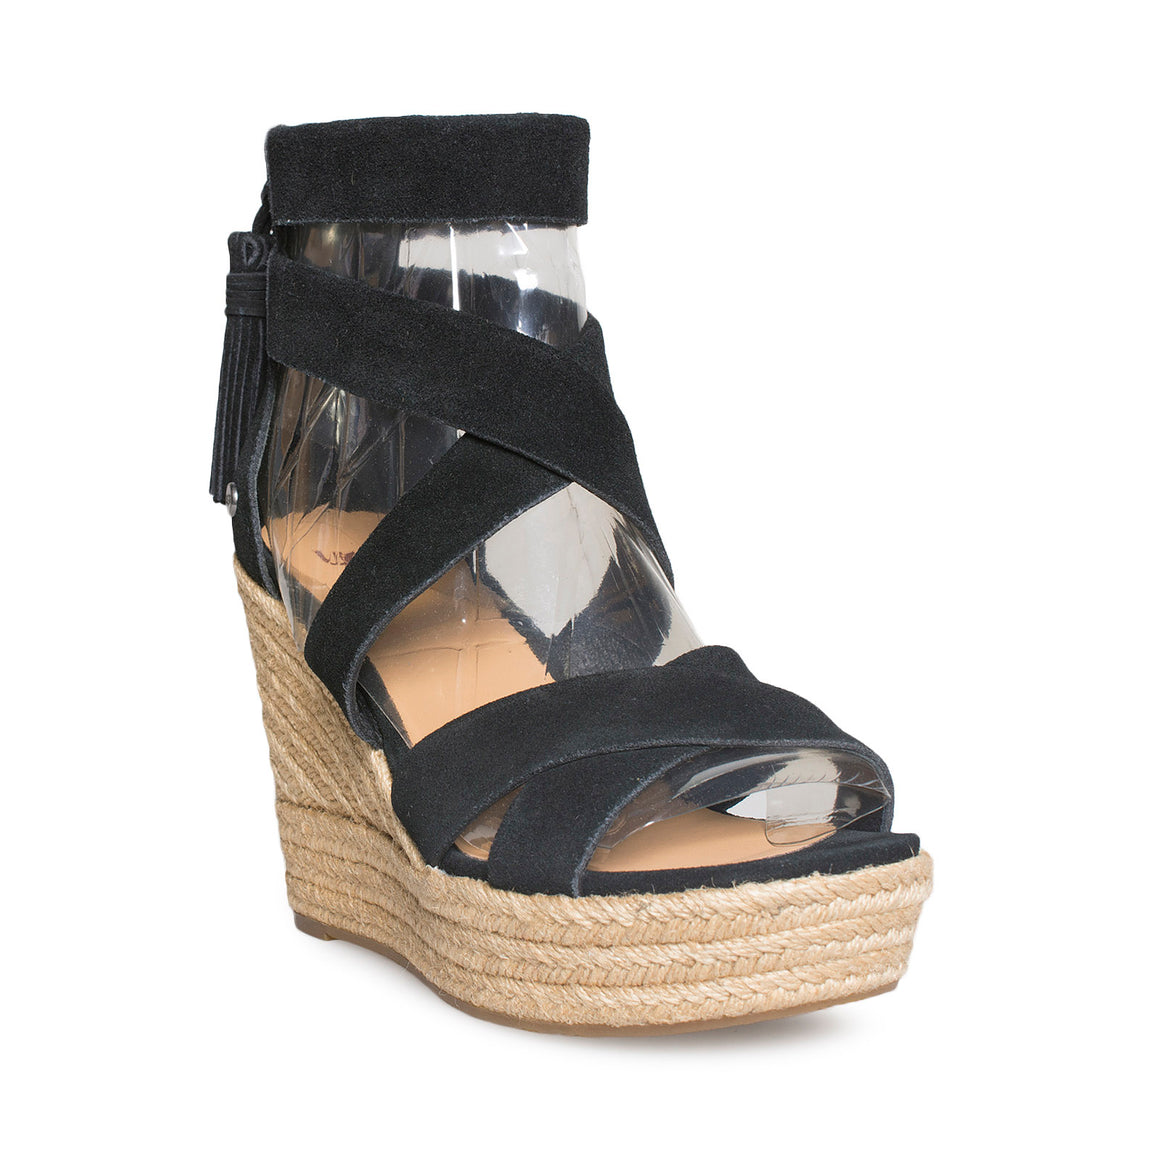 UGG Raquel Black Wedge Sandals - Women's